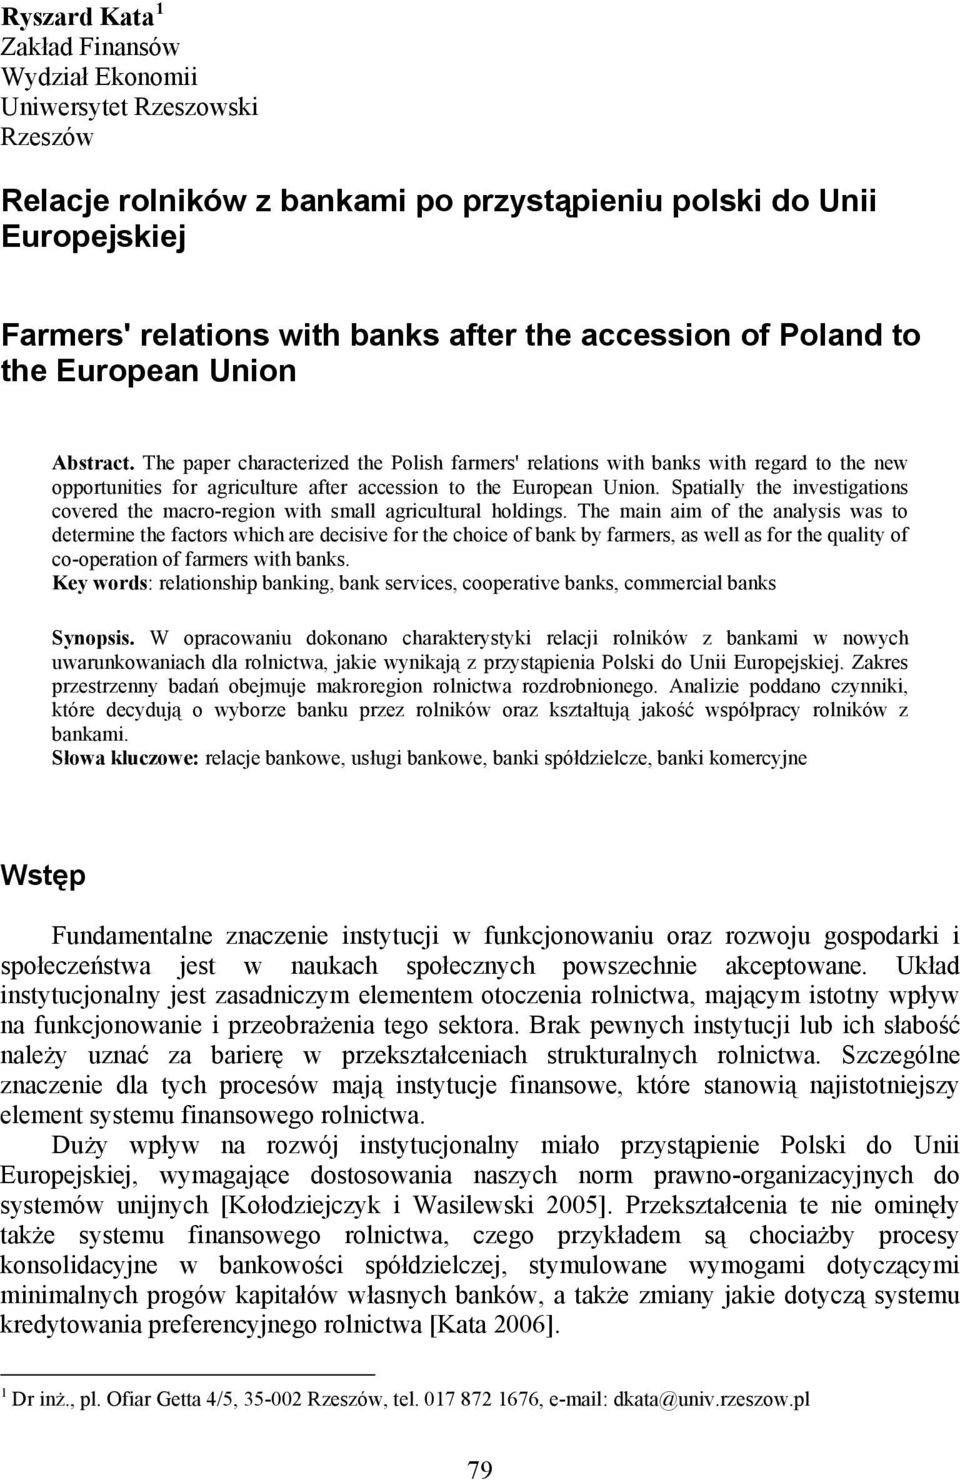 The paper characterized the Polish farmers' relations with banks with regard to the new opportunities for agriculture after accession to the European Union.